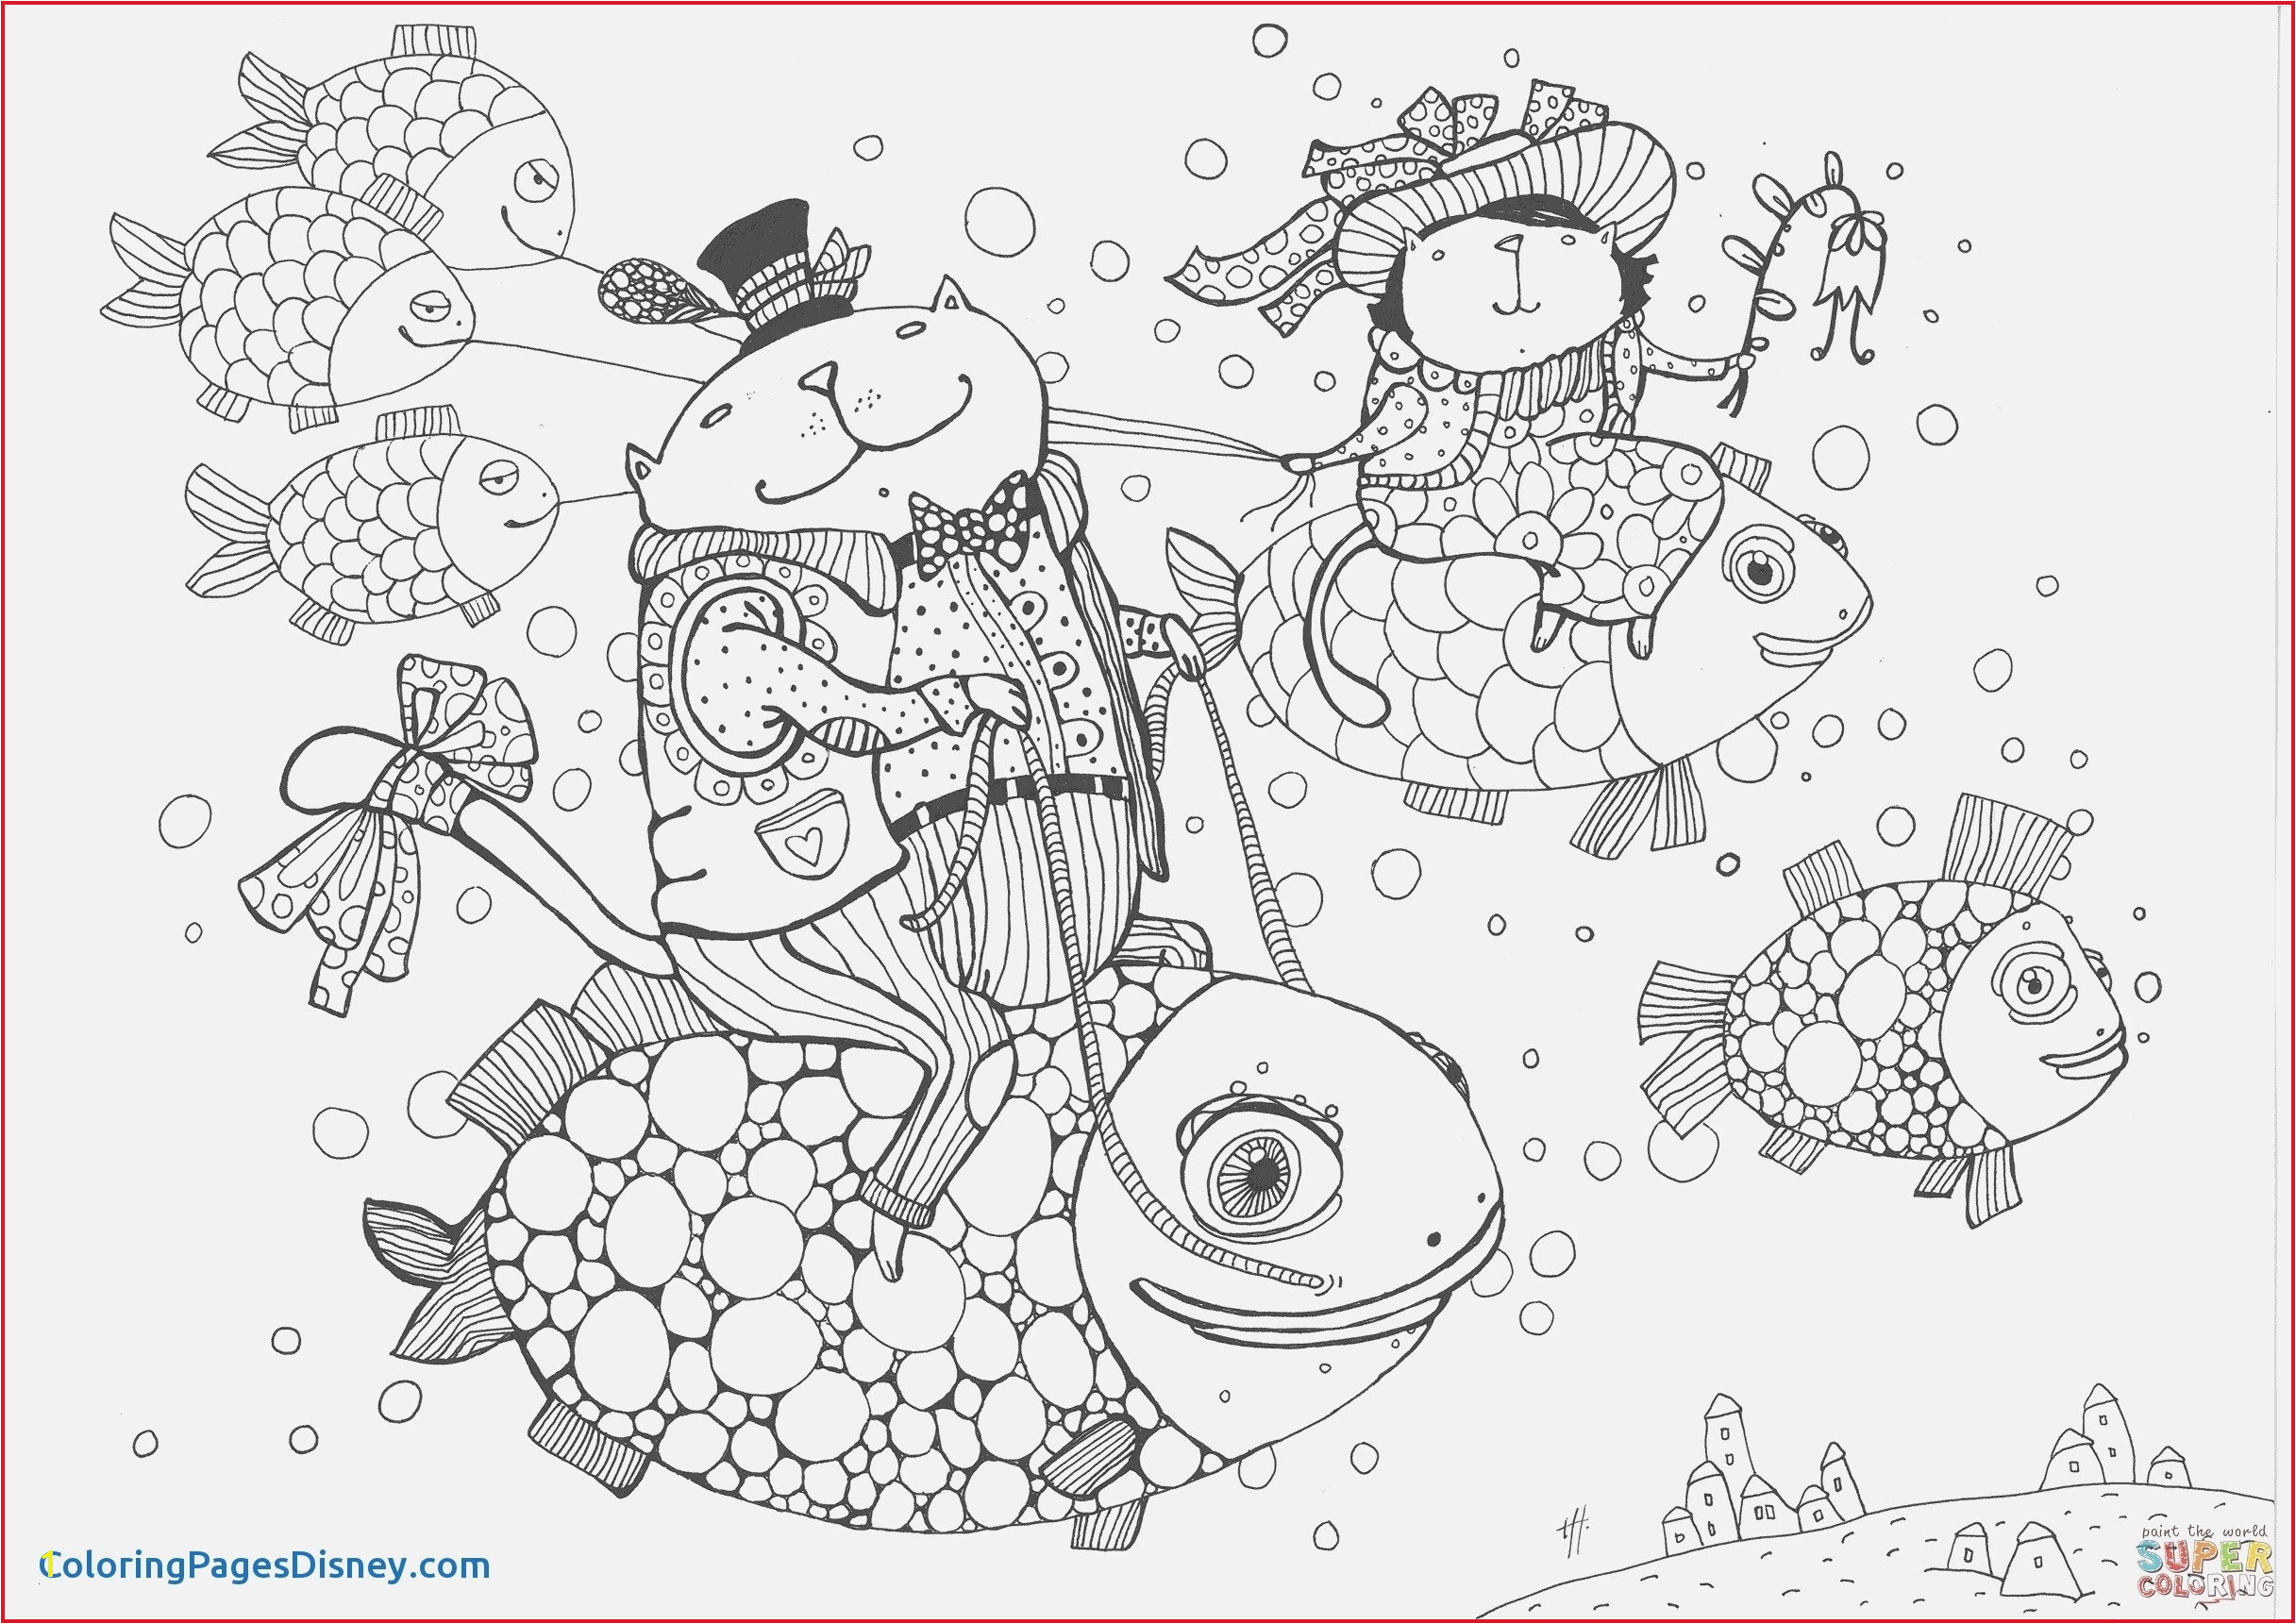 Happy Birthday Coloring Pages Happy Birthday Coloring Pages Elegant S Happy Birthday Coloring Cards New